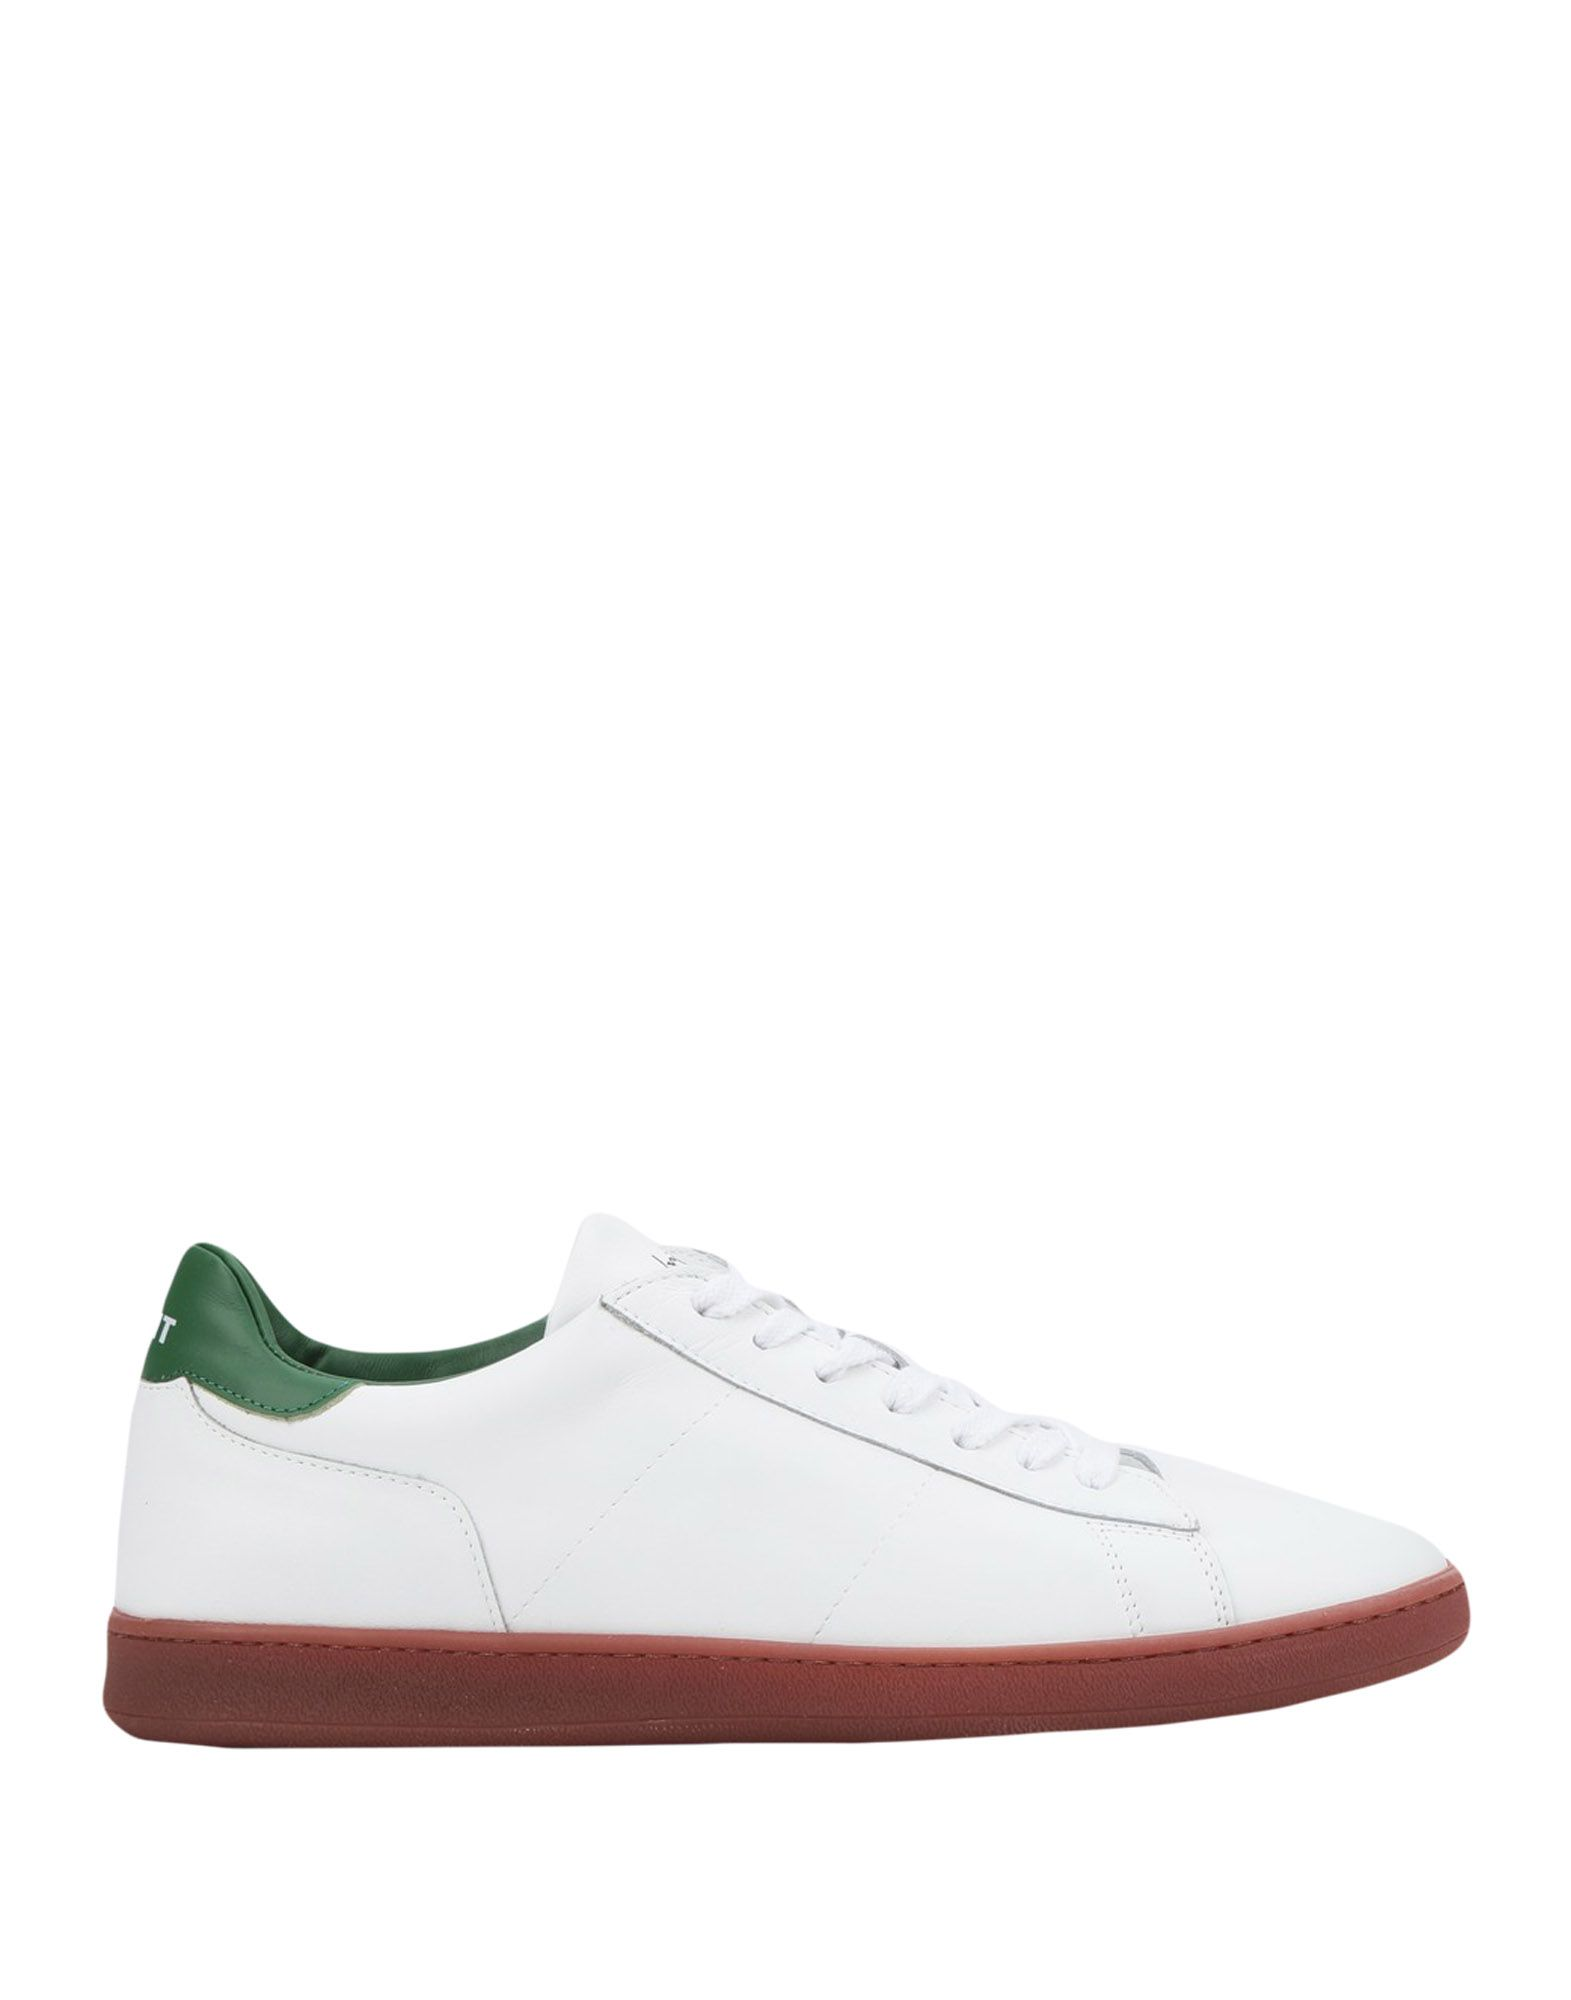 ROV Sneakers in Green